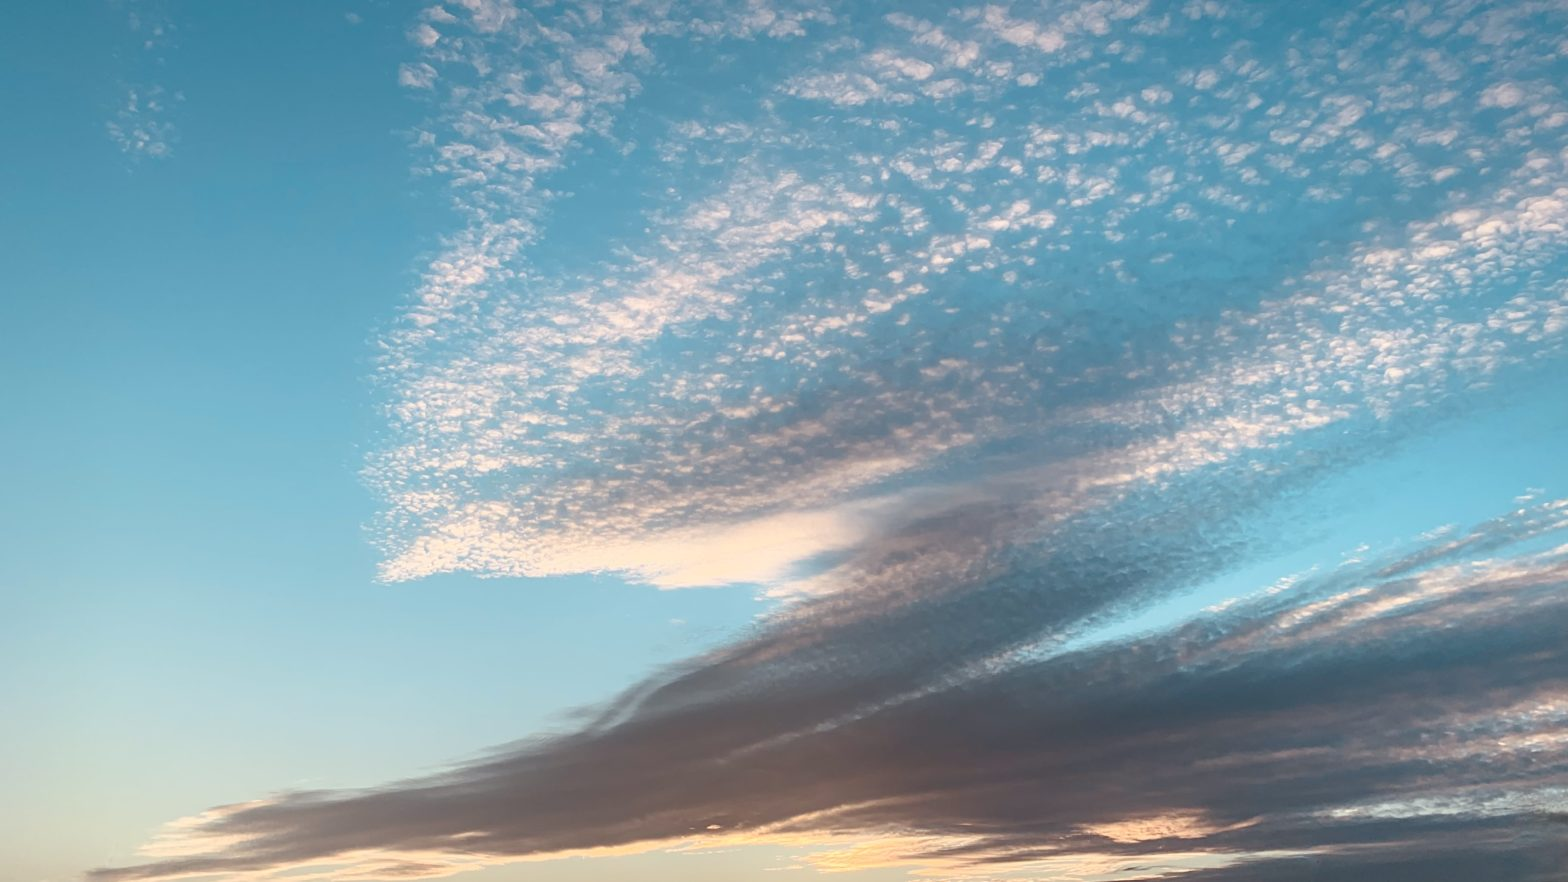 Scattered clouds just before sunset with clear sky visible to the left